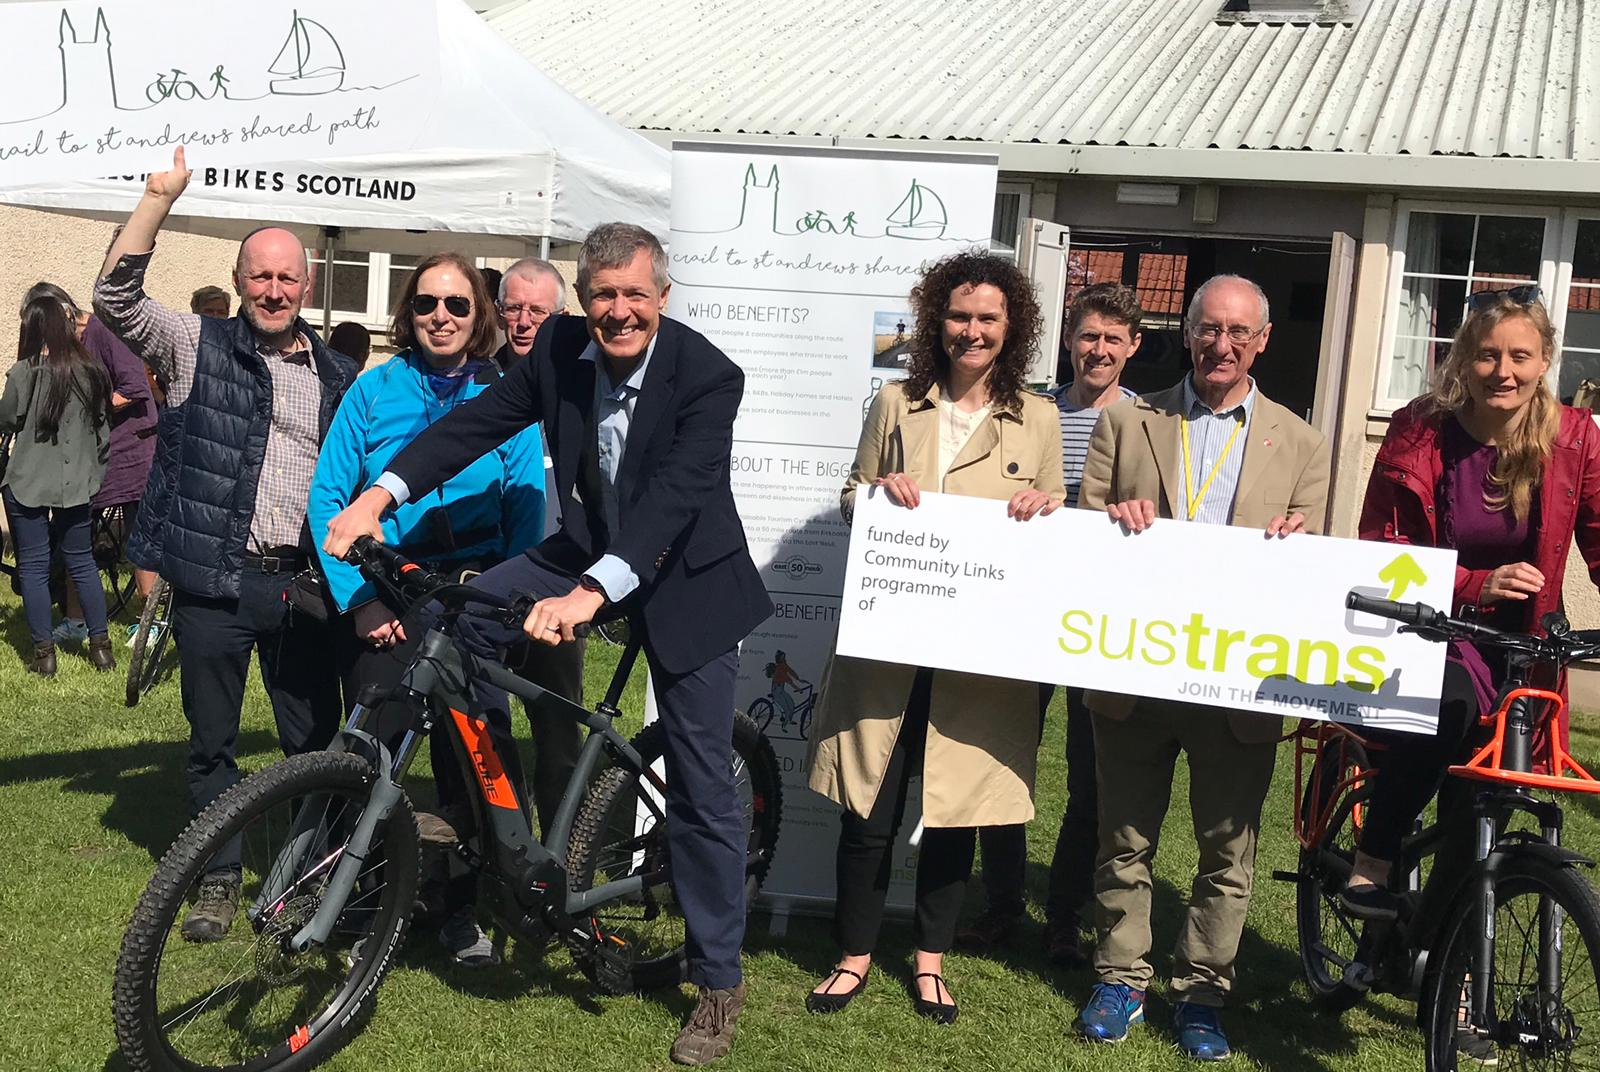 Wille Rennie on his bike, Wendy Chamberlain and Liberal Democrat councillor Bill Porteous are holding the Sustrans sign.